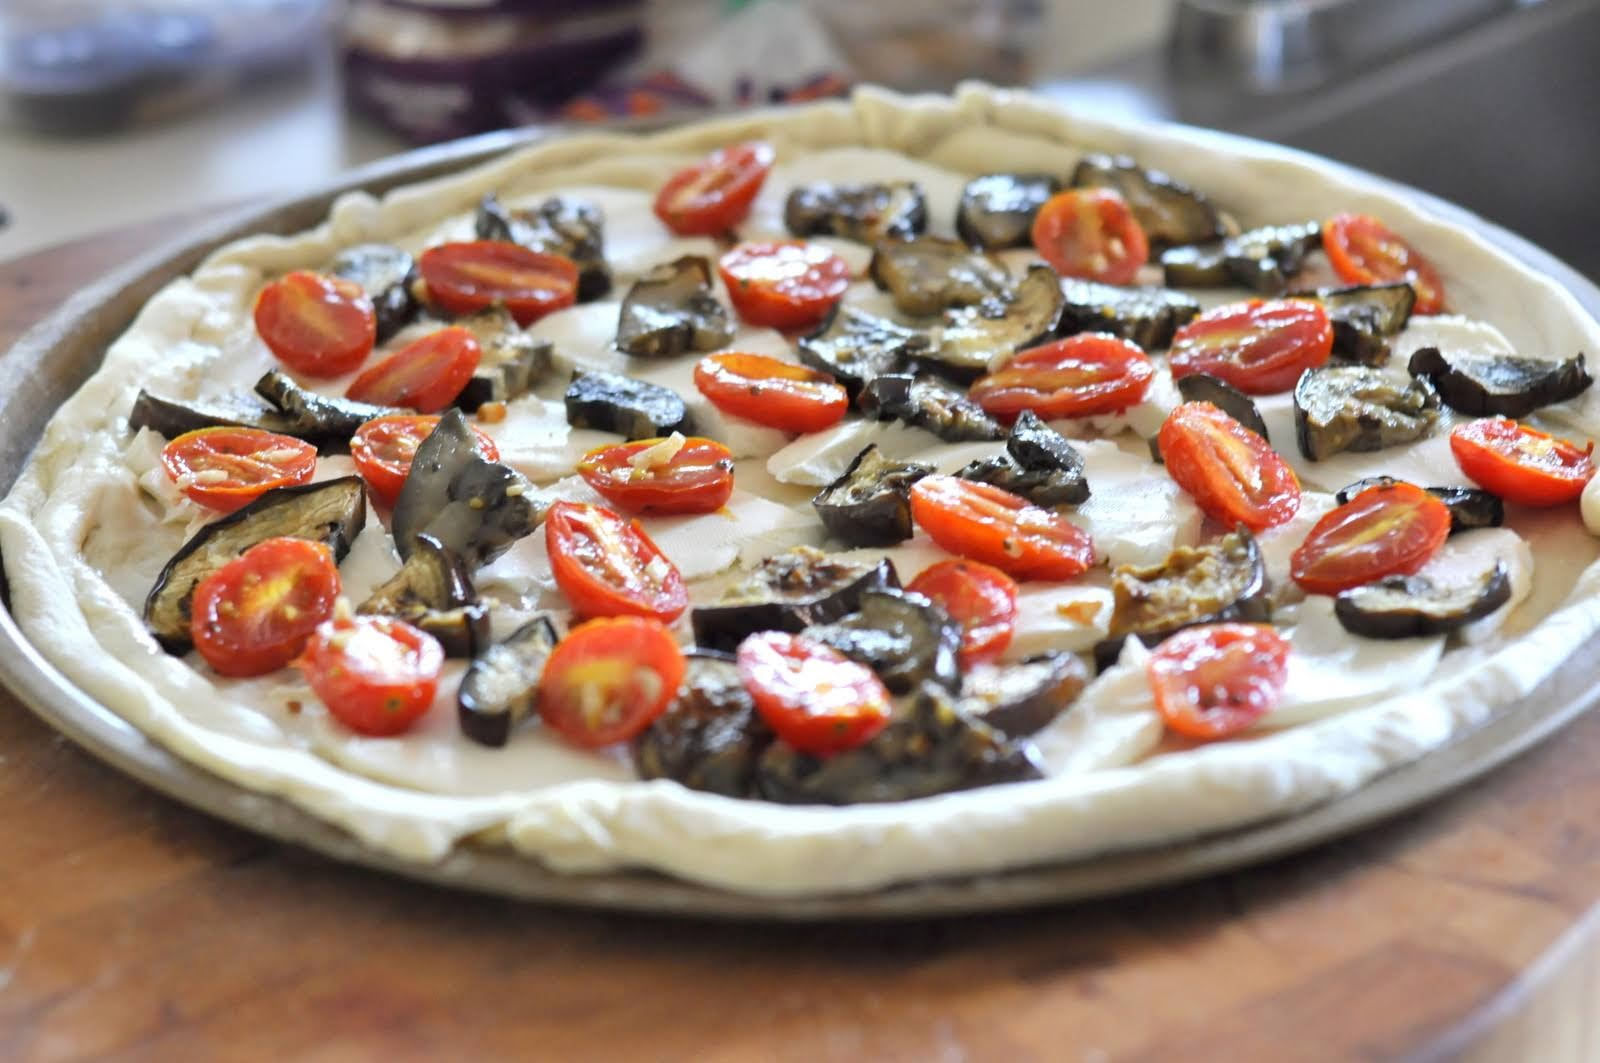 In our house, when I'm at a loss for topping ideas for Pizza Night, we generally turn to this family-favorite -- Pizza with Eggplant, Grape Tomatoes, and Fresh Mozzarella! Get the recipe on Taste As You Go!